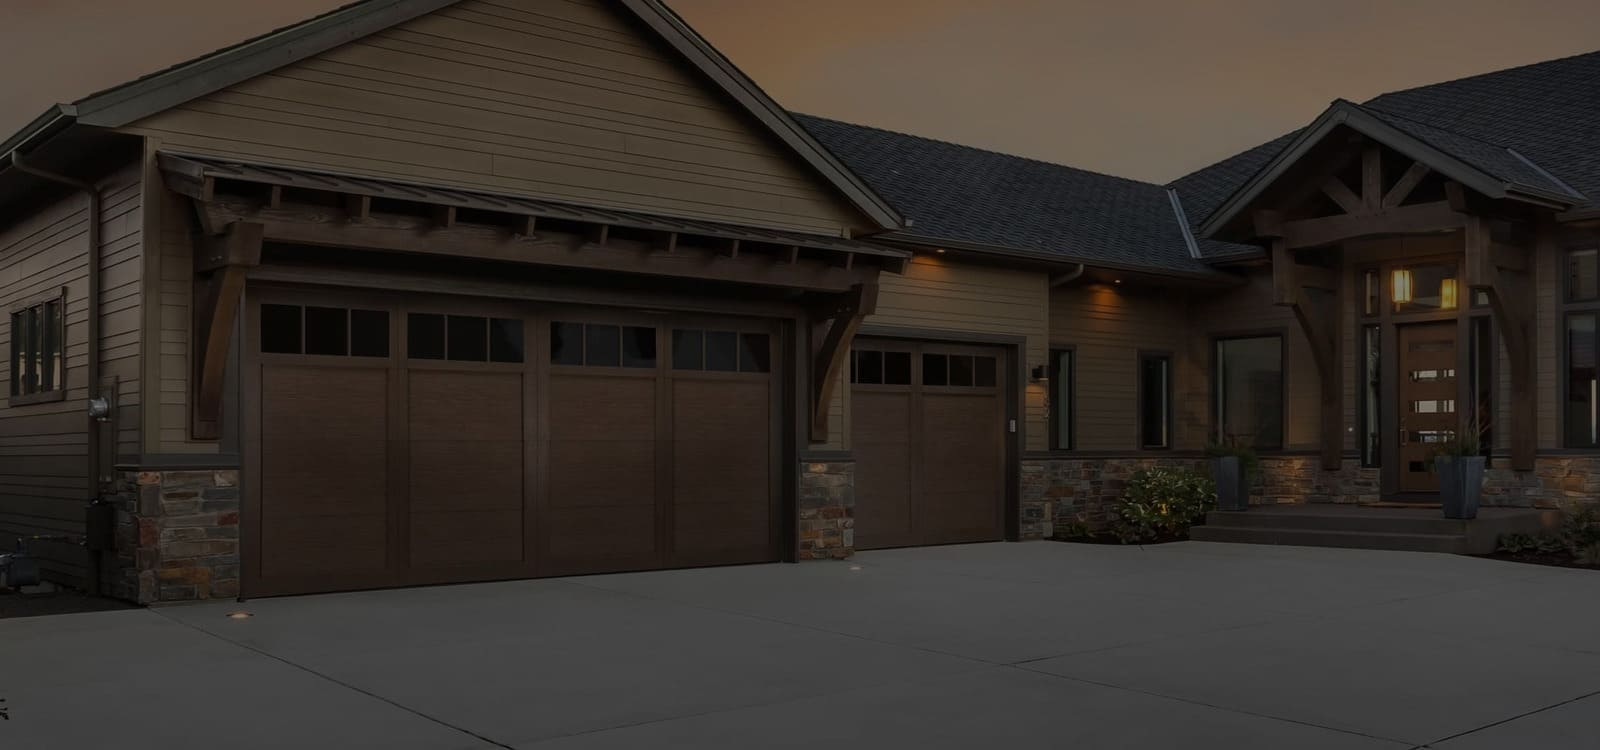 American Fork Garage Door Repair